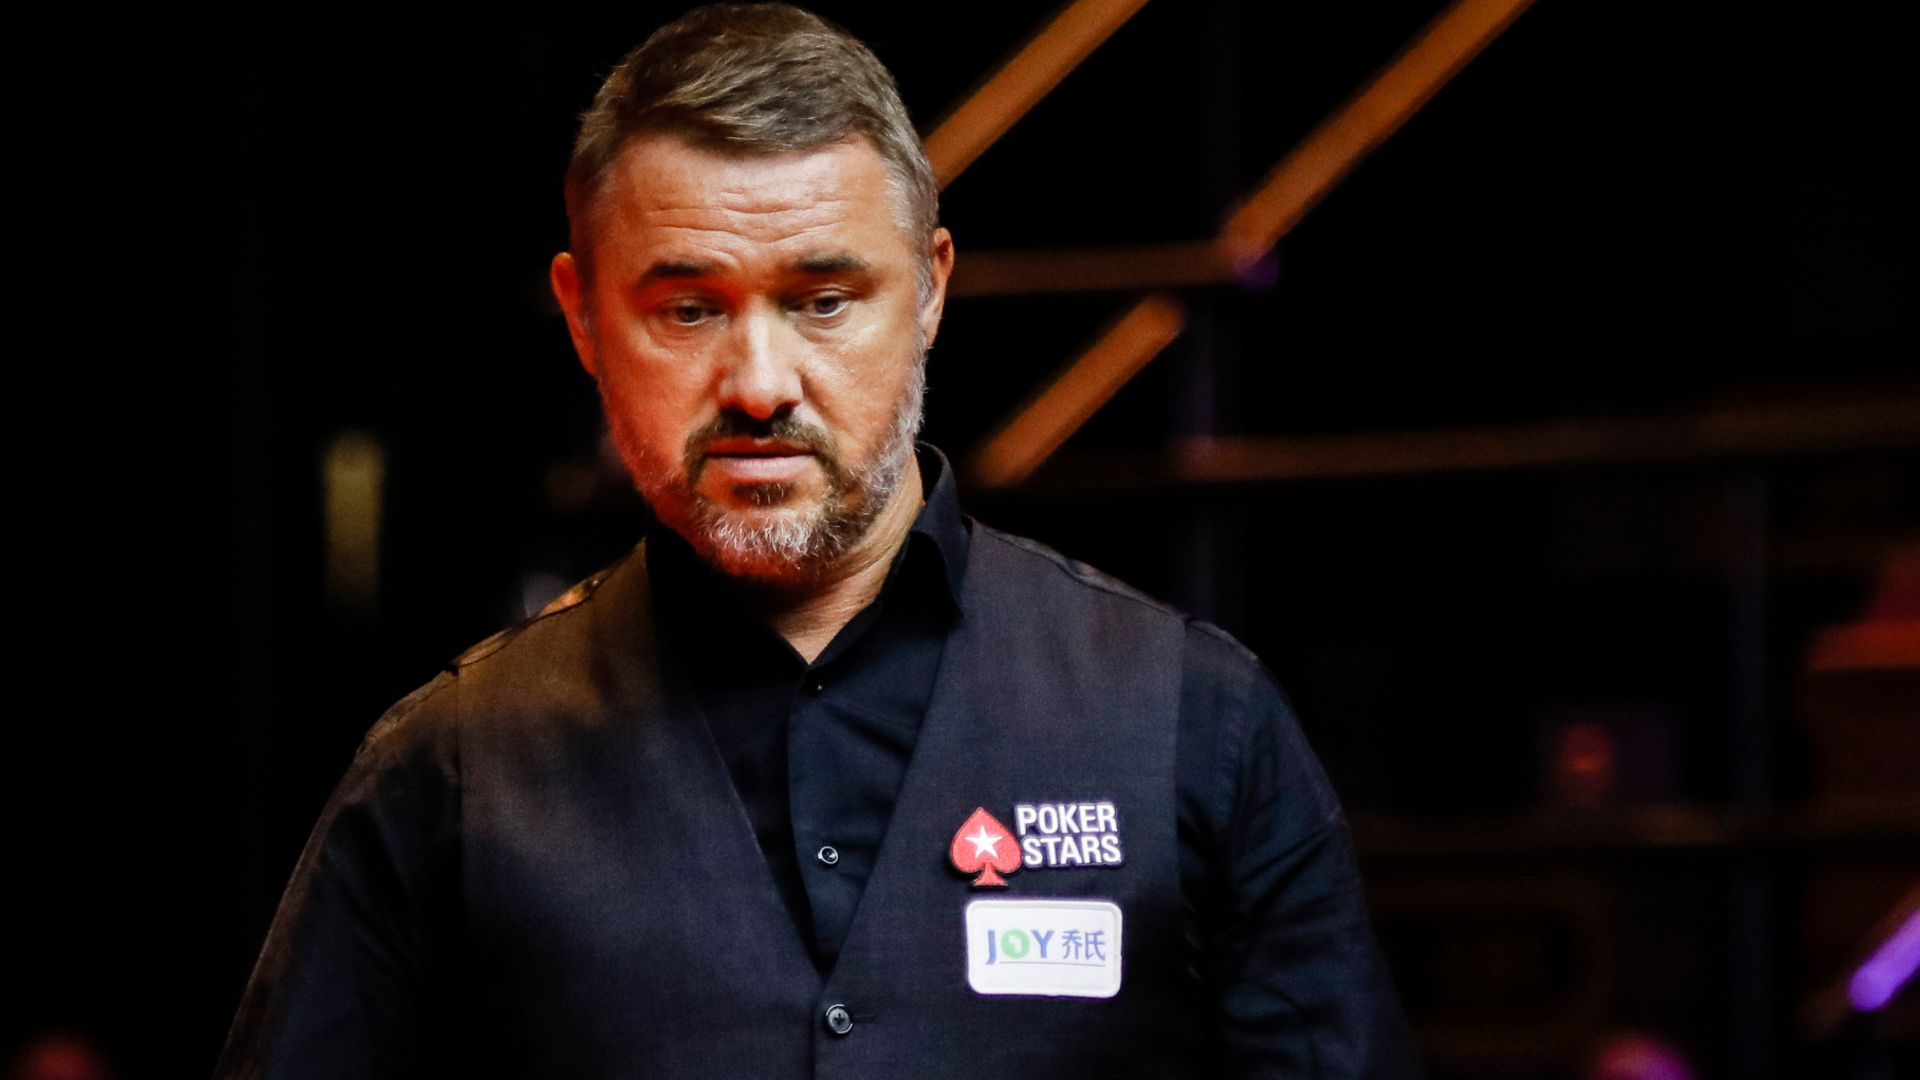 World Snooker Championship: Stephen Hendry's hopes end in second qualifying round